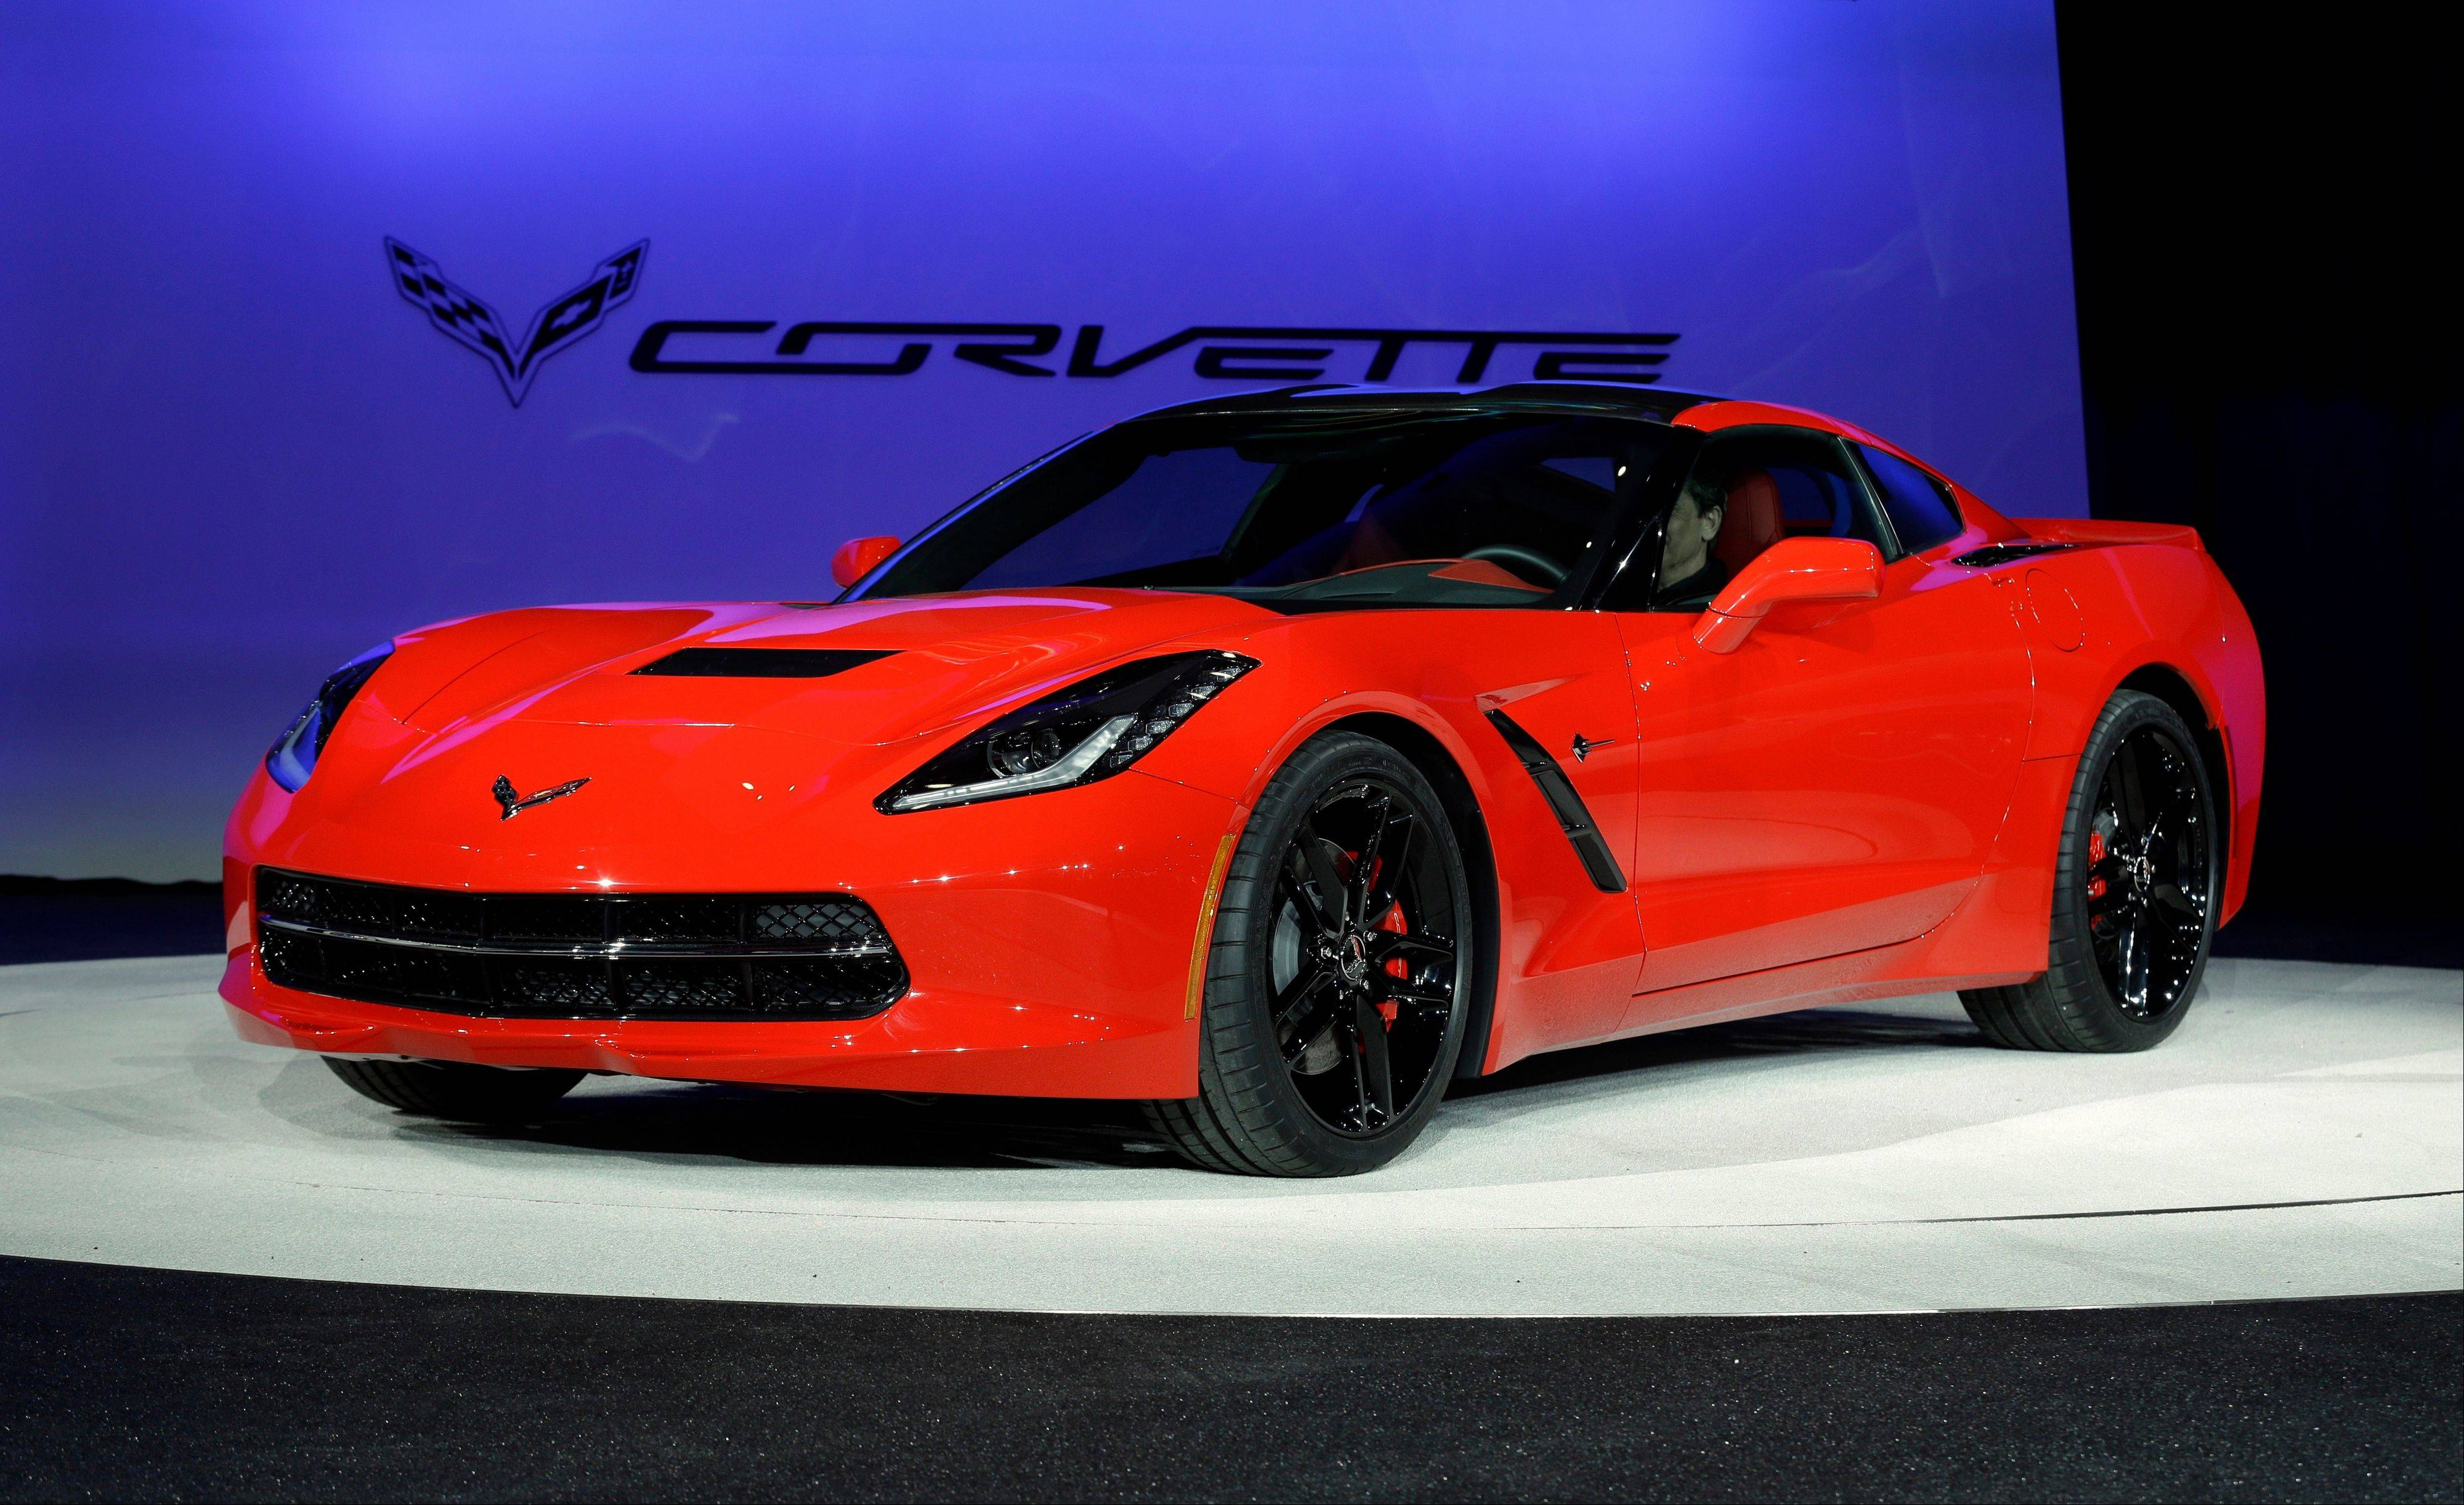 The 2014 Chevrolet Corvette Stingray is revealed at media previews for the North American International Auto Show in Detroit. Maybe it was the brand new, bright red Chevrolet Corvette gleaming in one corner, or the elegant BMW coupe in the other, but car companies were positively giddy this week as the North American International Auto Show opened in Detroit.